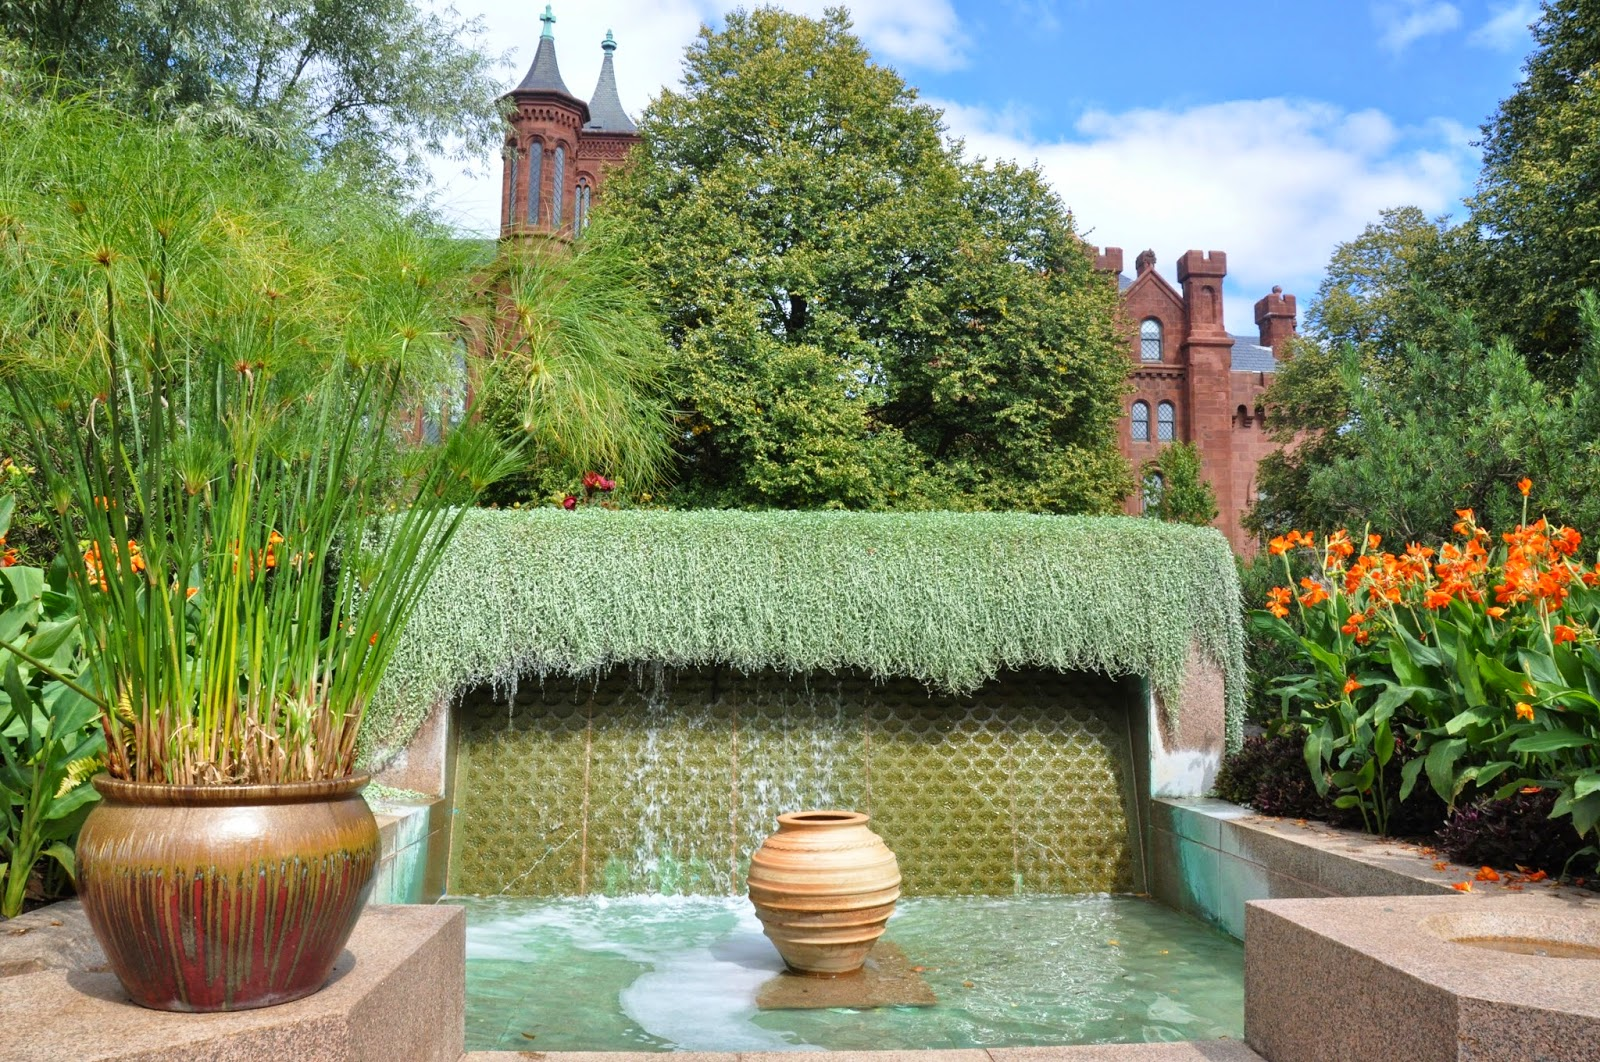 A GREAT EUROPE TRIP PLANNER: IN THE ENID A. HAUPT GARDEN...